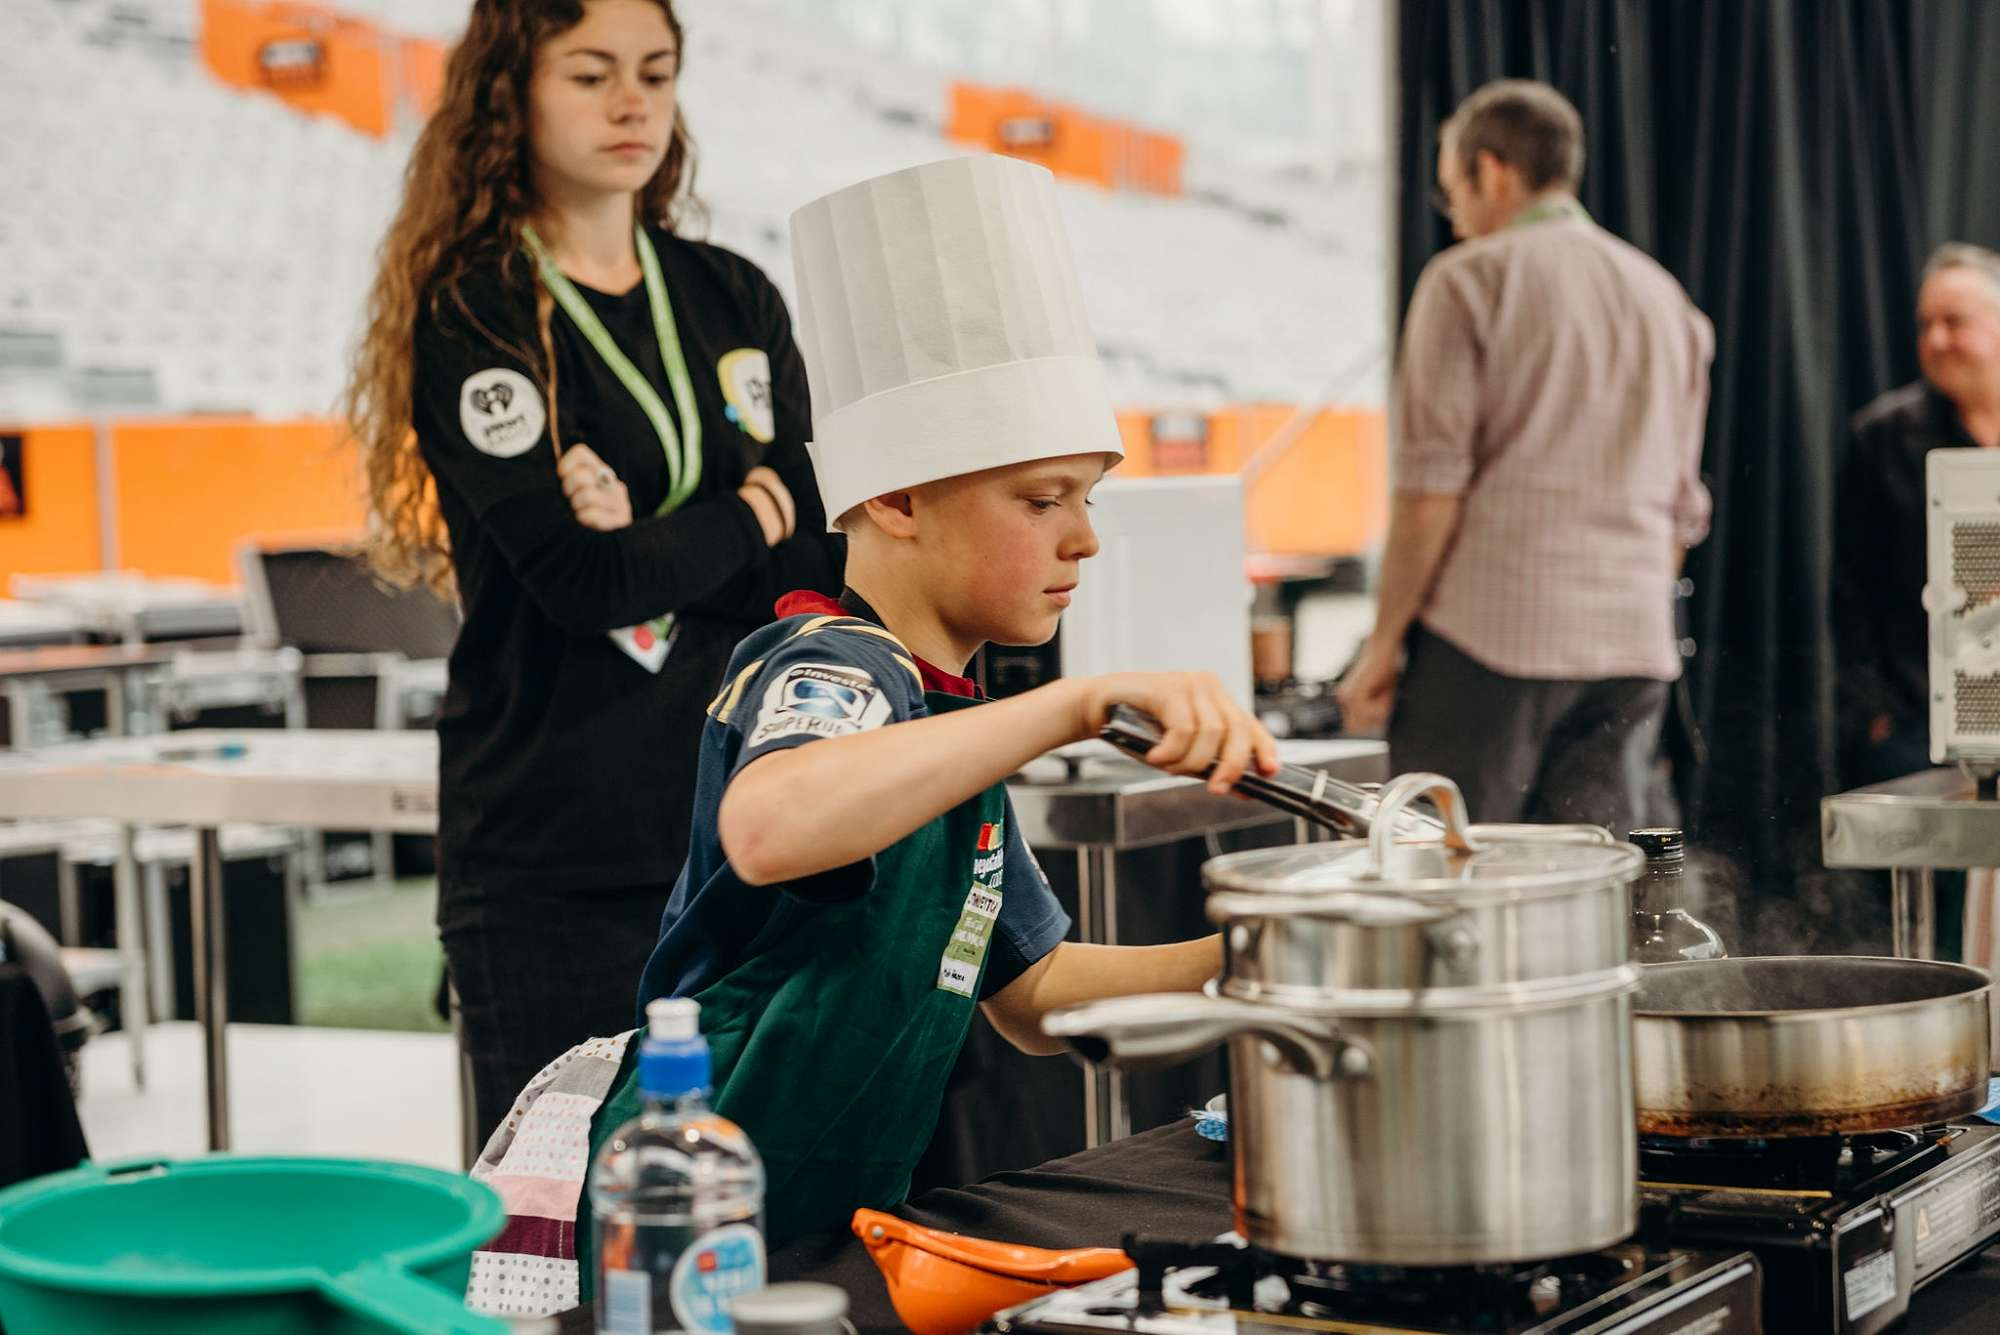 Our young chefs cooked up a storm in just 30 minut